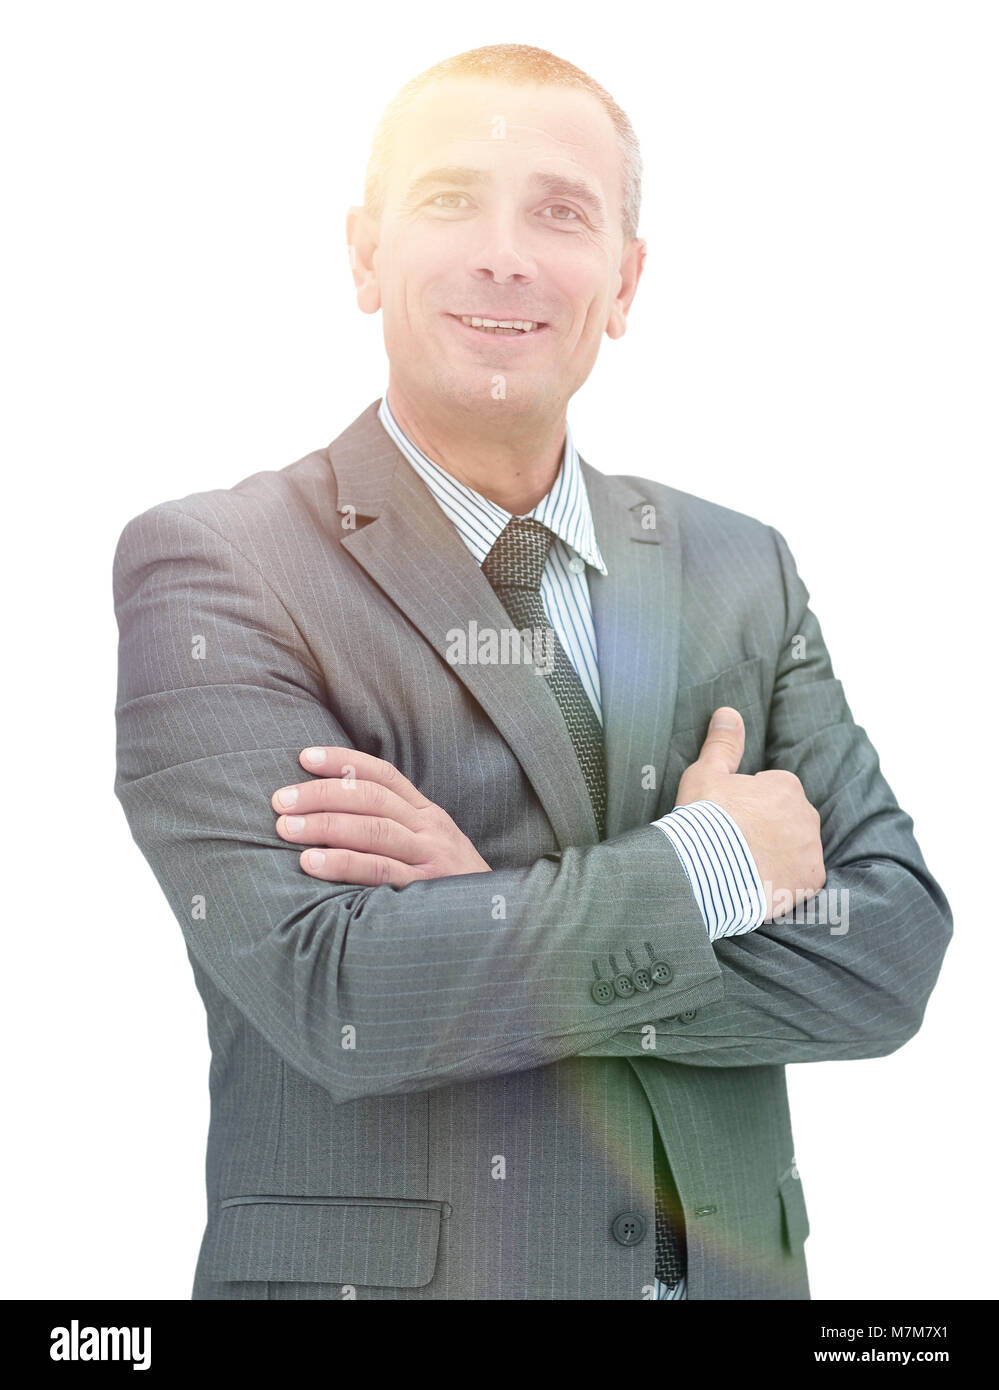 Happy mature man in suit smiling while standing against white - Stock Image